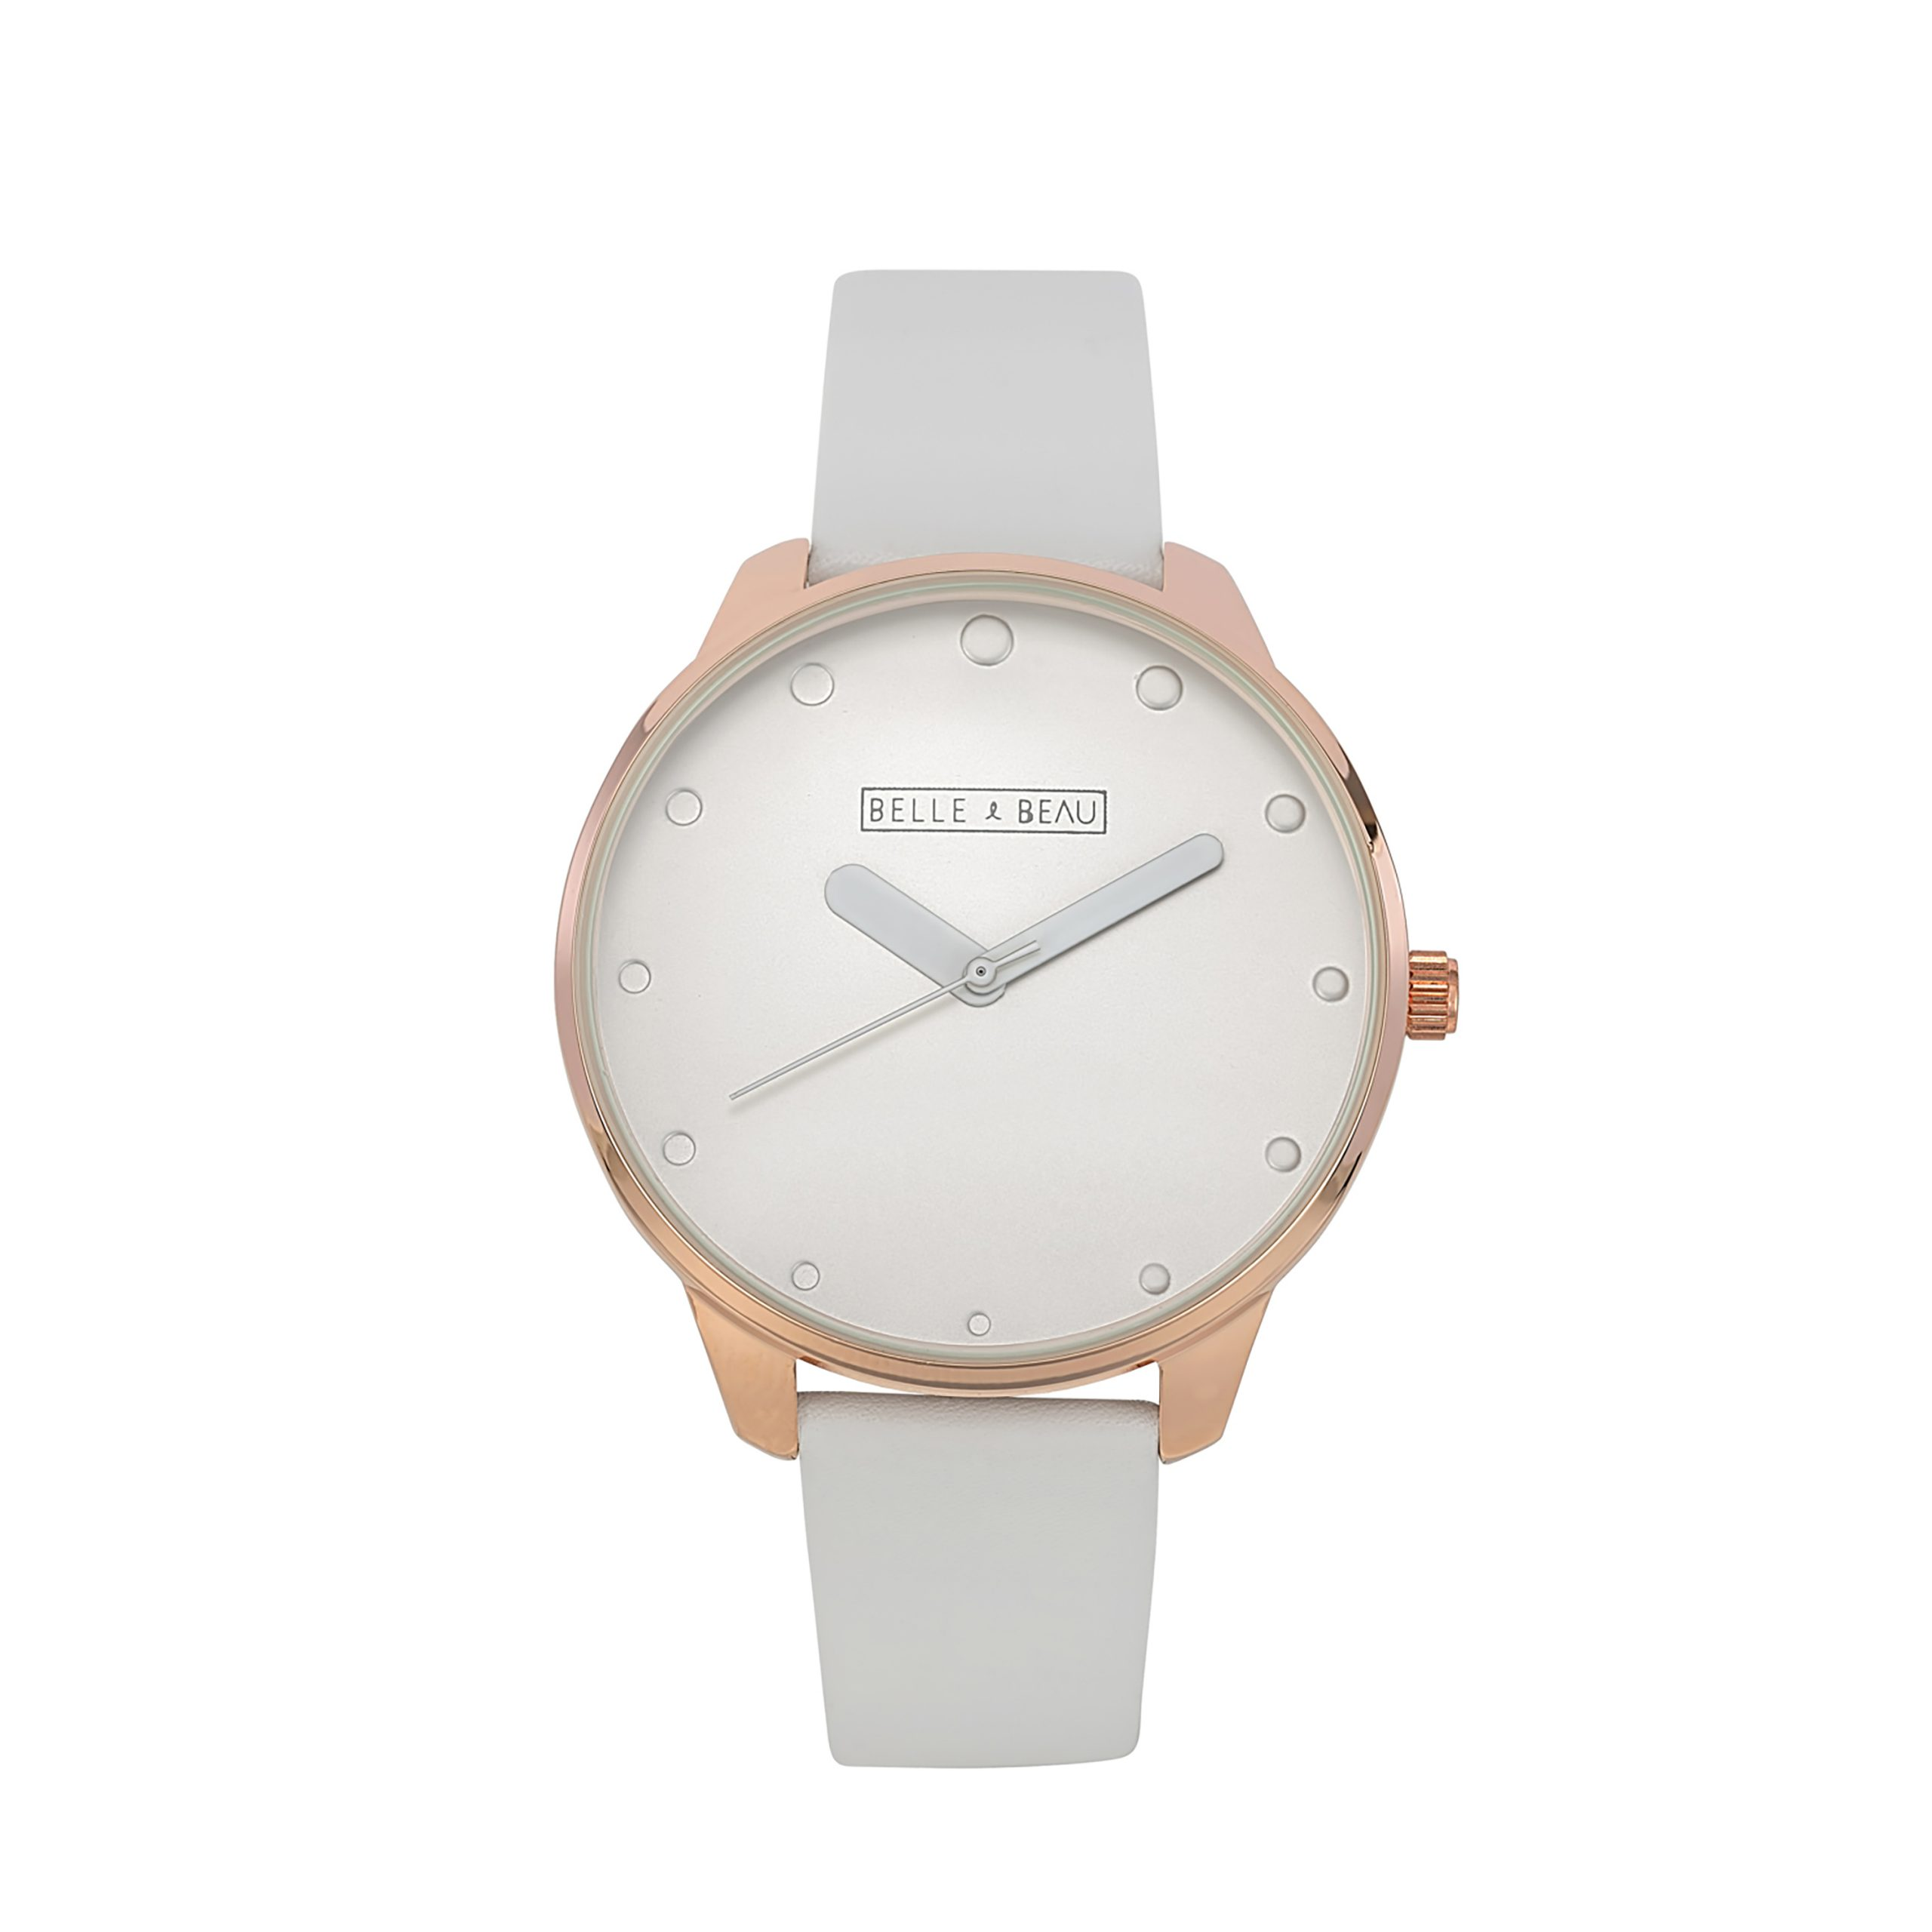 Cosmetica Porcelain Watch